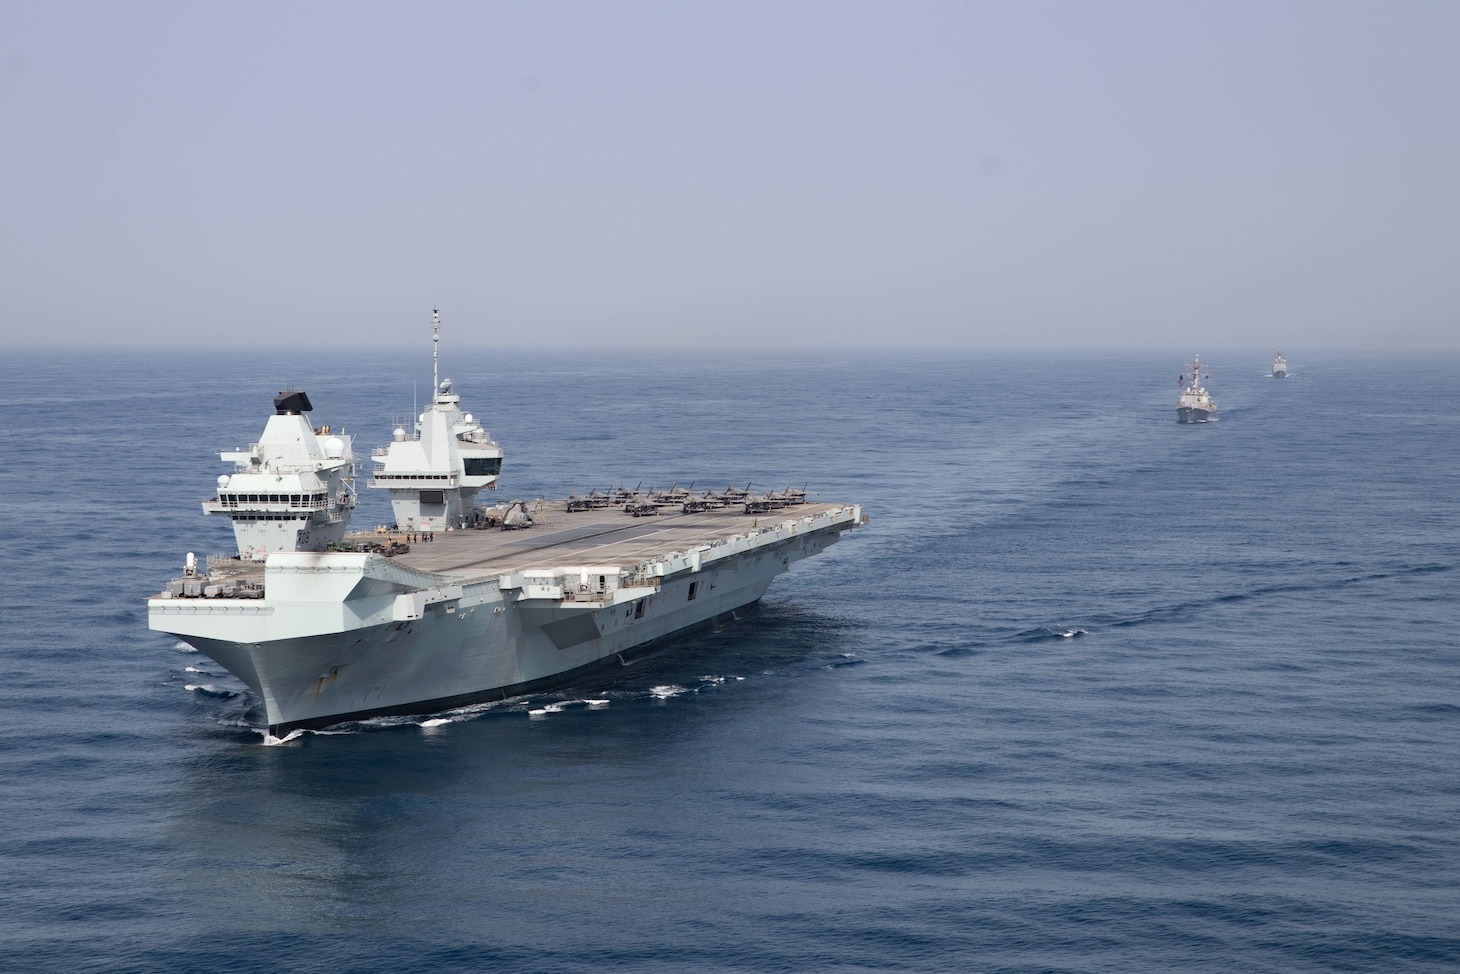 UK, Dutch and U.S. naval forces conduct an integrated at-sea exercise in the Gulf of Aden.